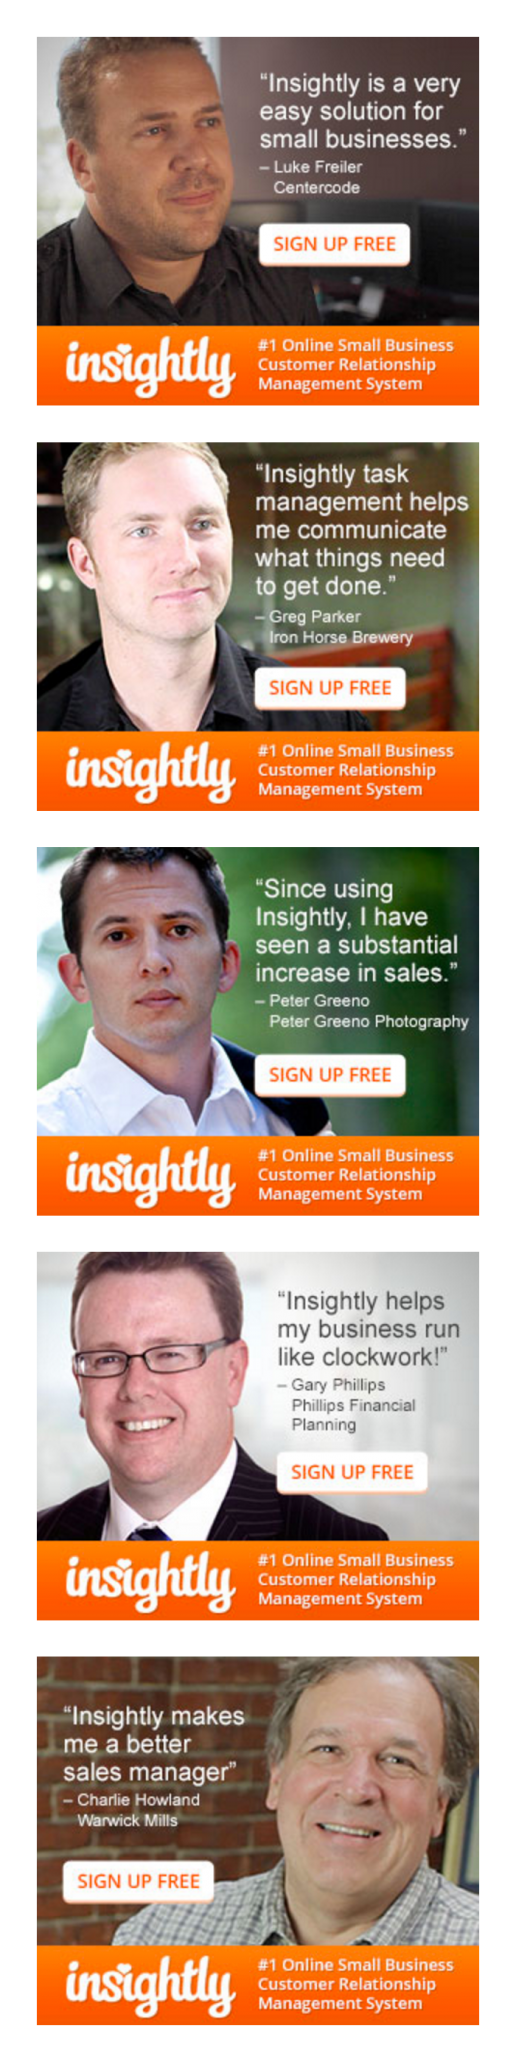 insightly-customer-testimonial-banner-ad-previews